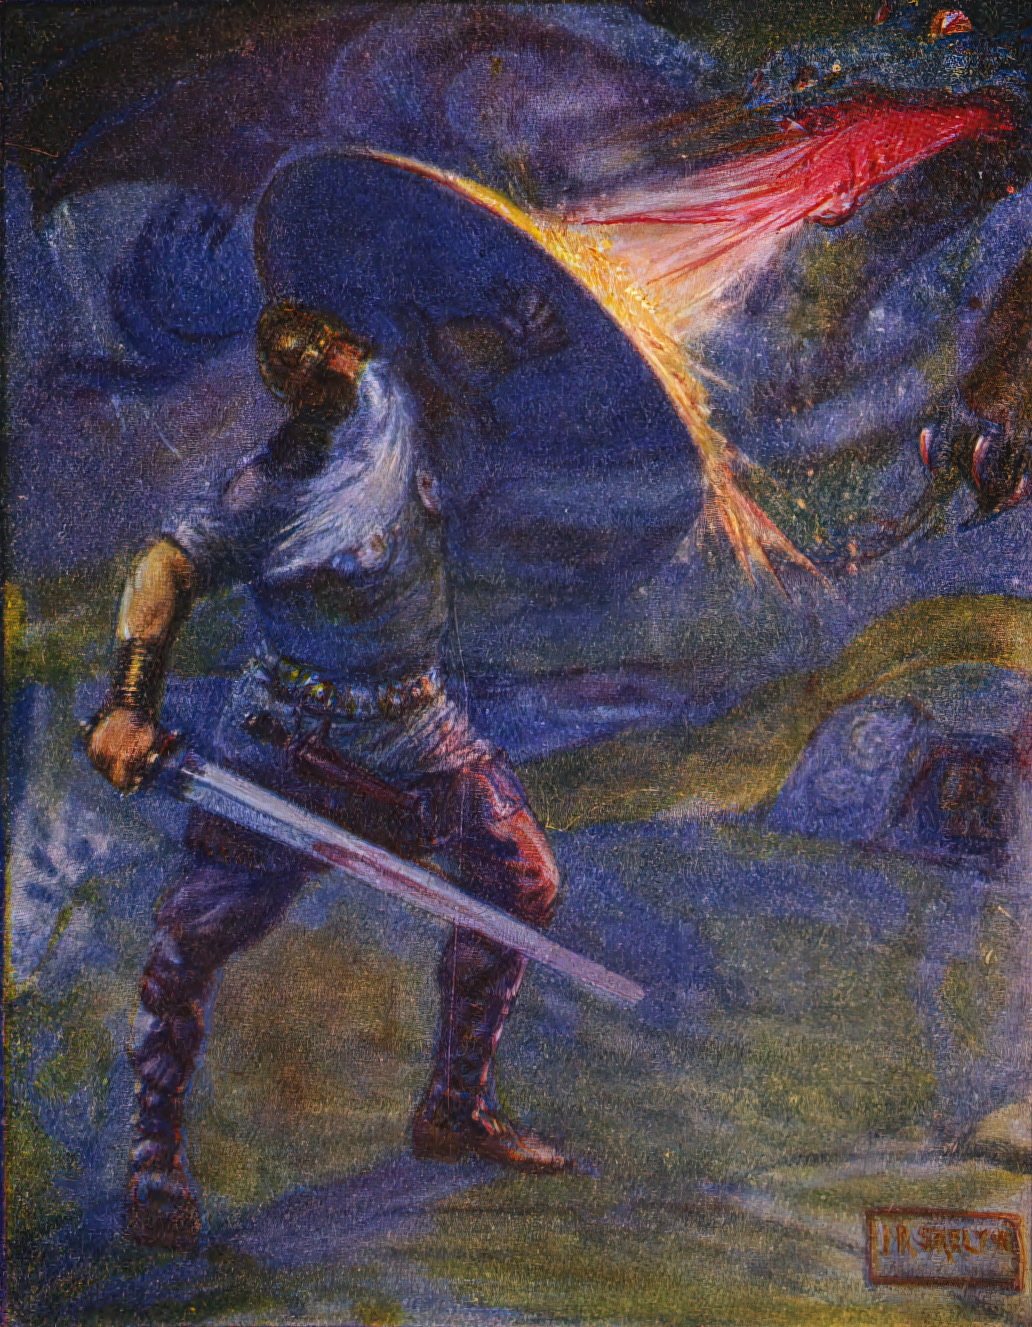 File:Beowulf and the dragon.jpg